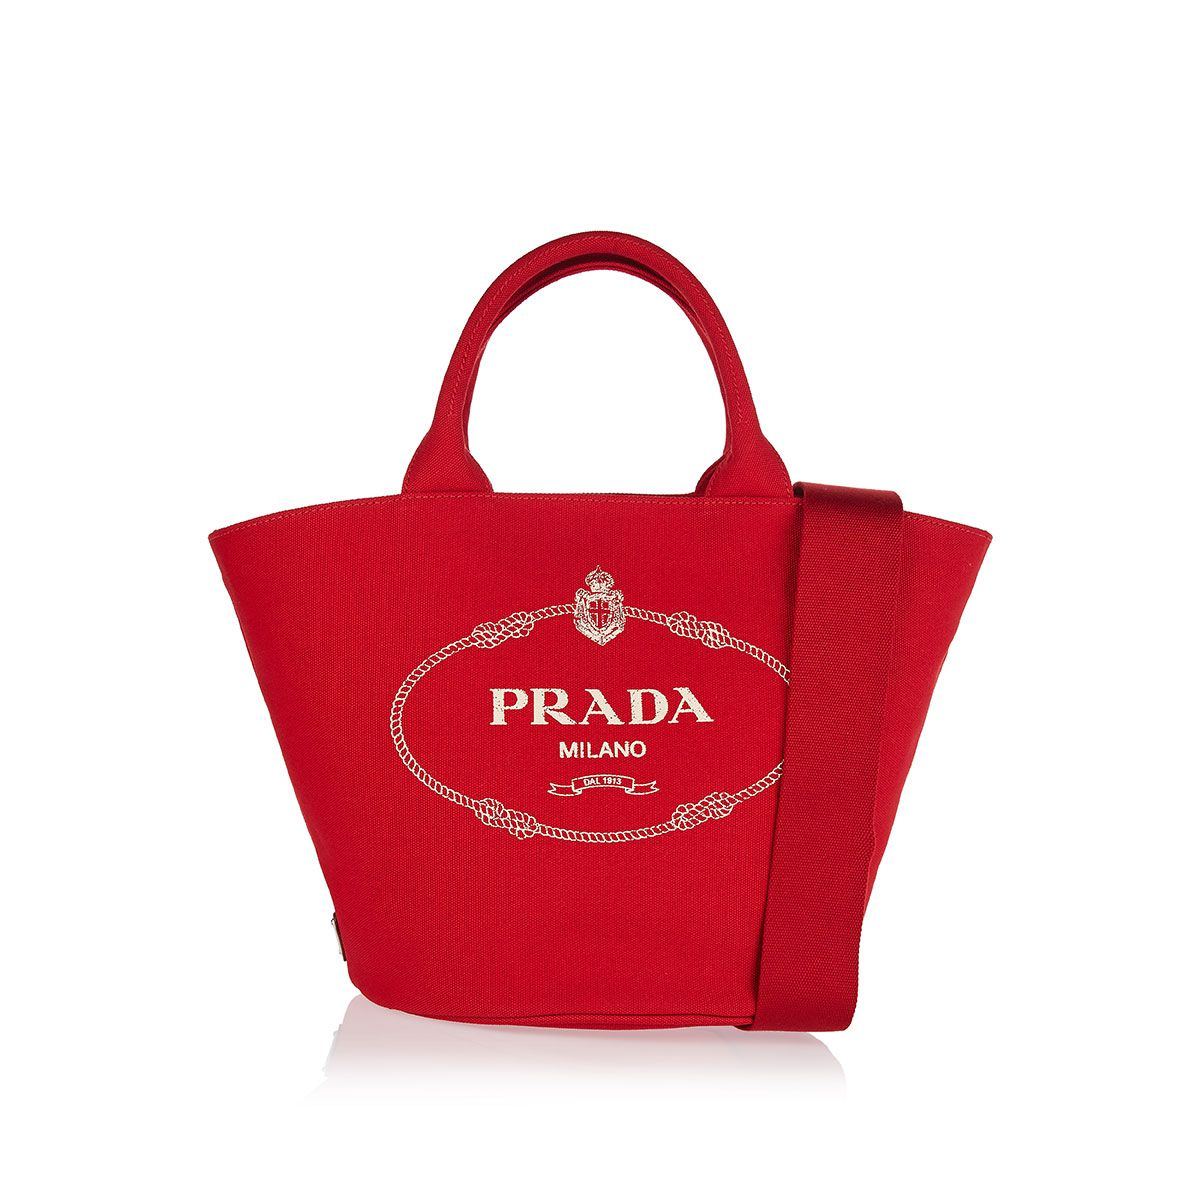 91f241d5dd Shop this Logo cotton tote bag from the latest collection of Prada  womenswear online at LUISAWORLD.COM. All the fashion trends are here!